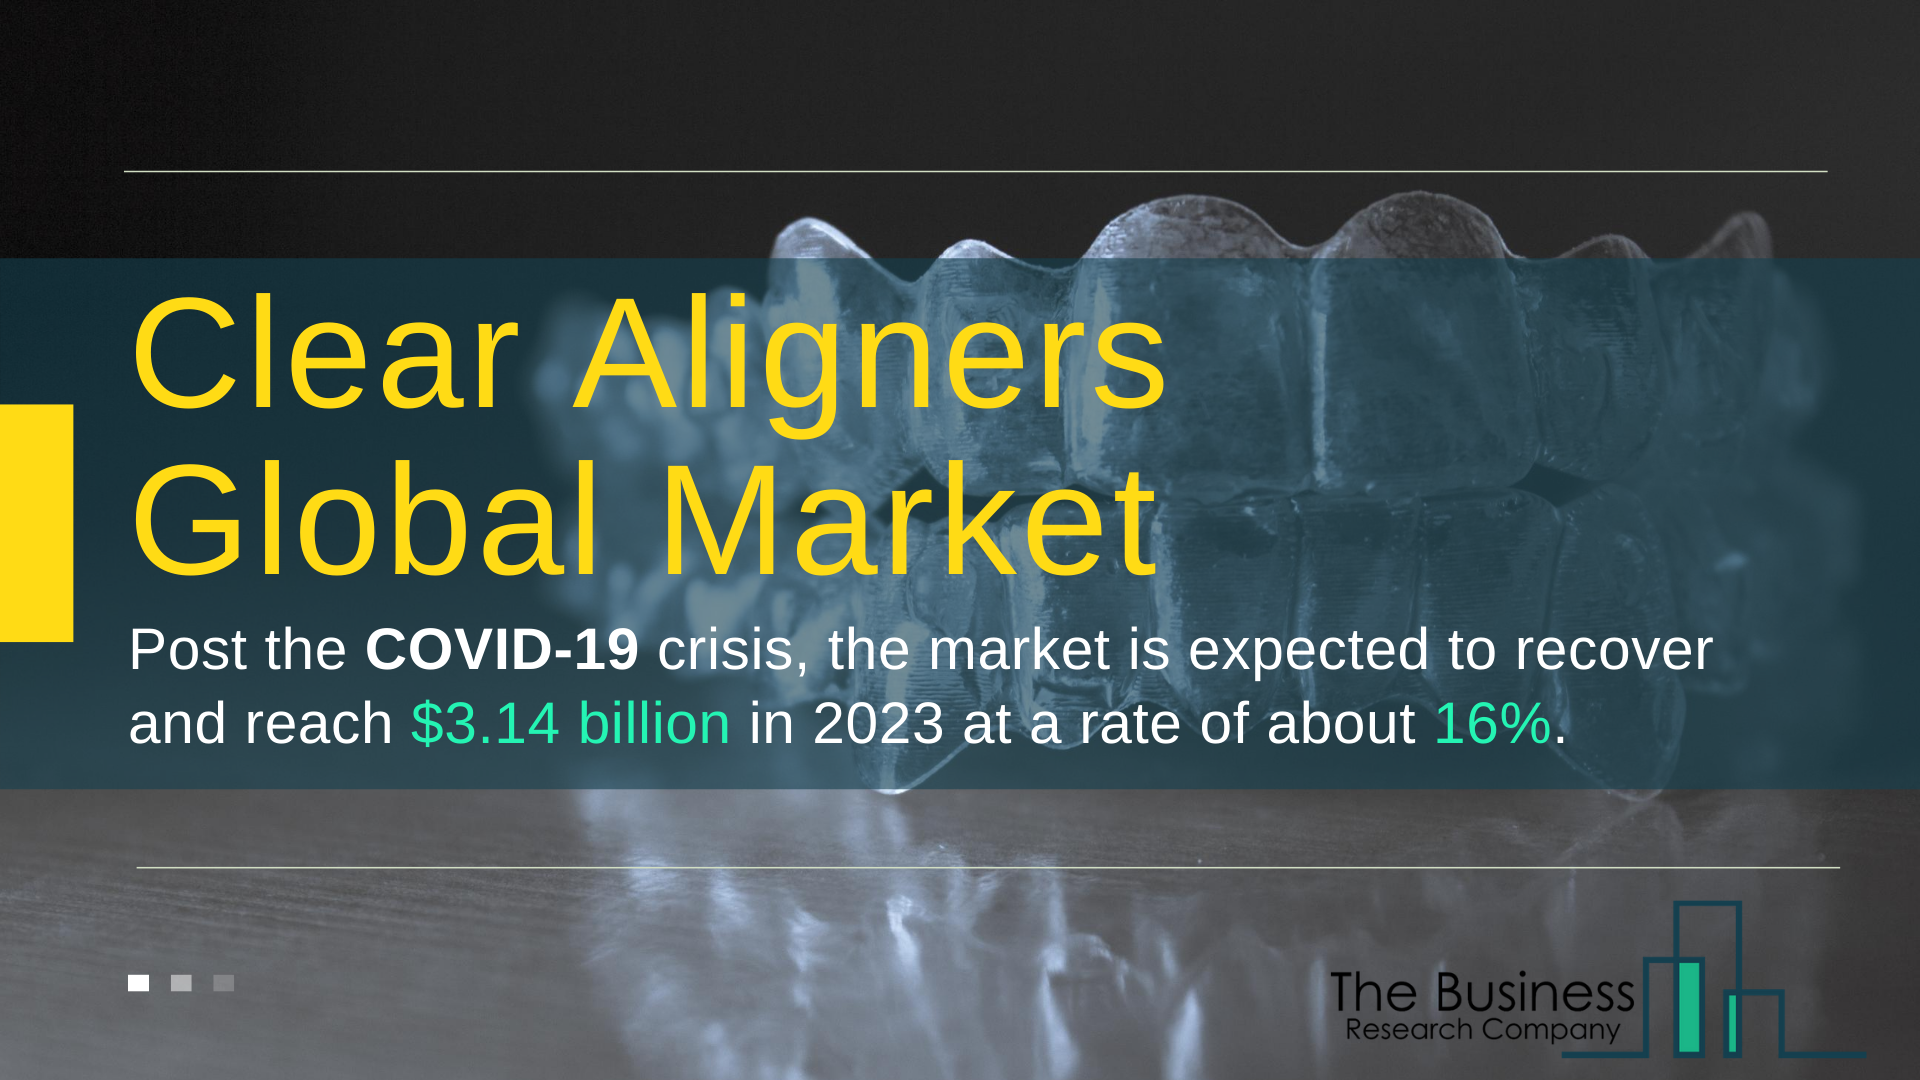 Global Clear Aligners Market Value Expected To Reach $3 billion By 2023